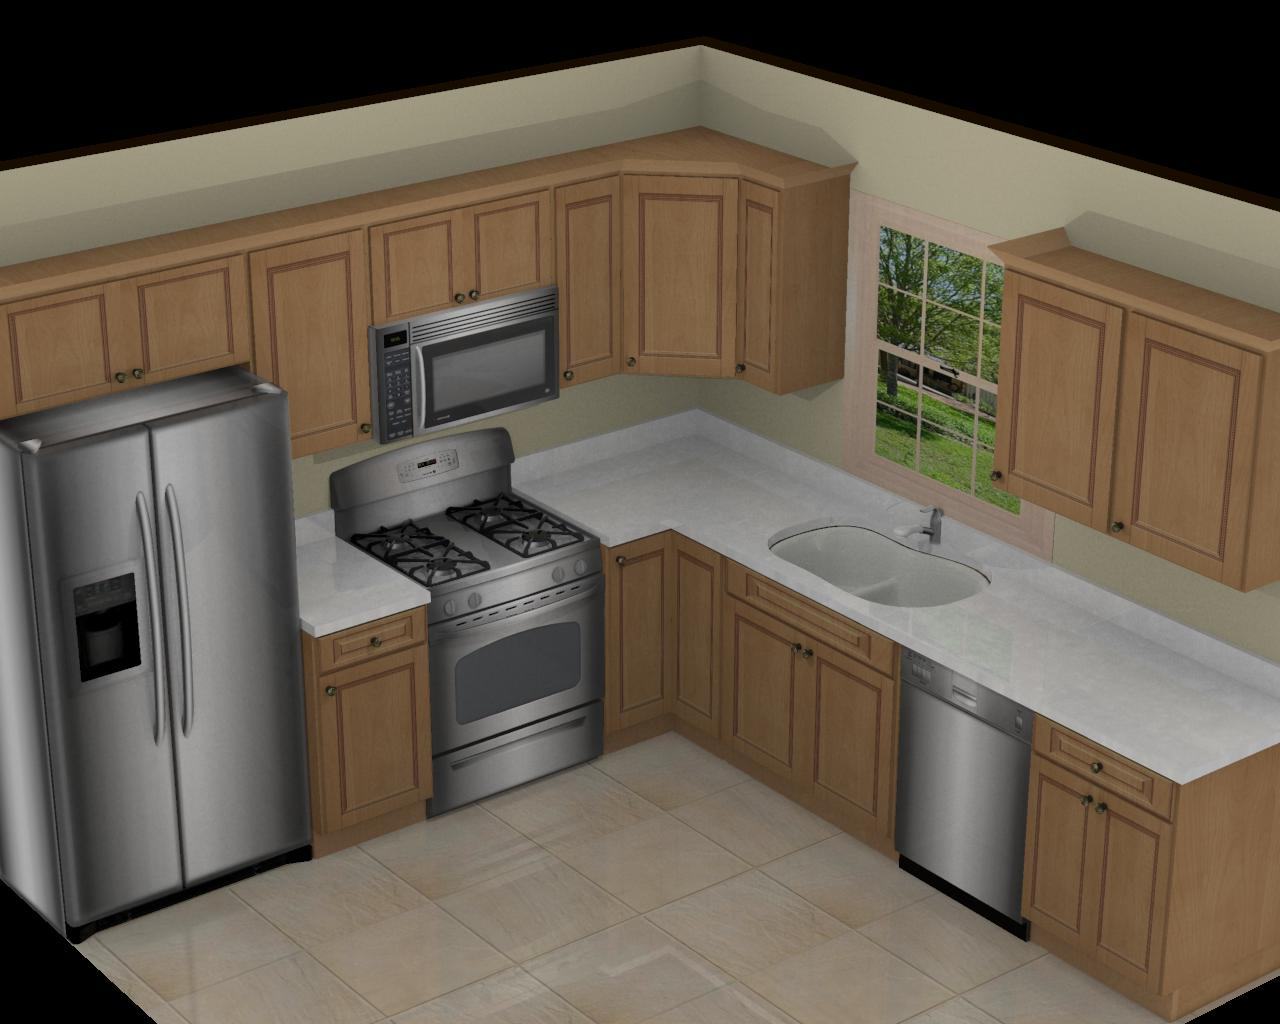 Ideas for kitchen remodeling floor plans roy home design for Kitchen floor remodel ideas